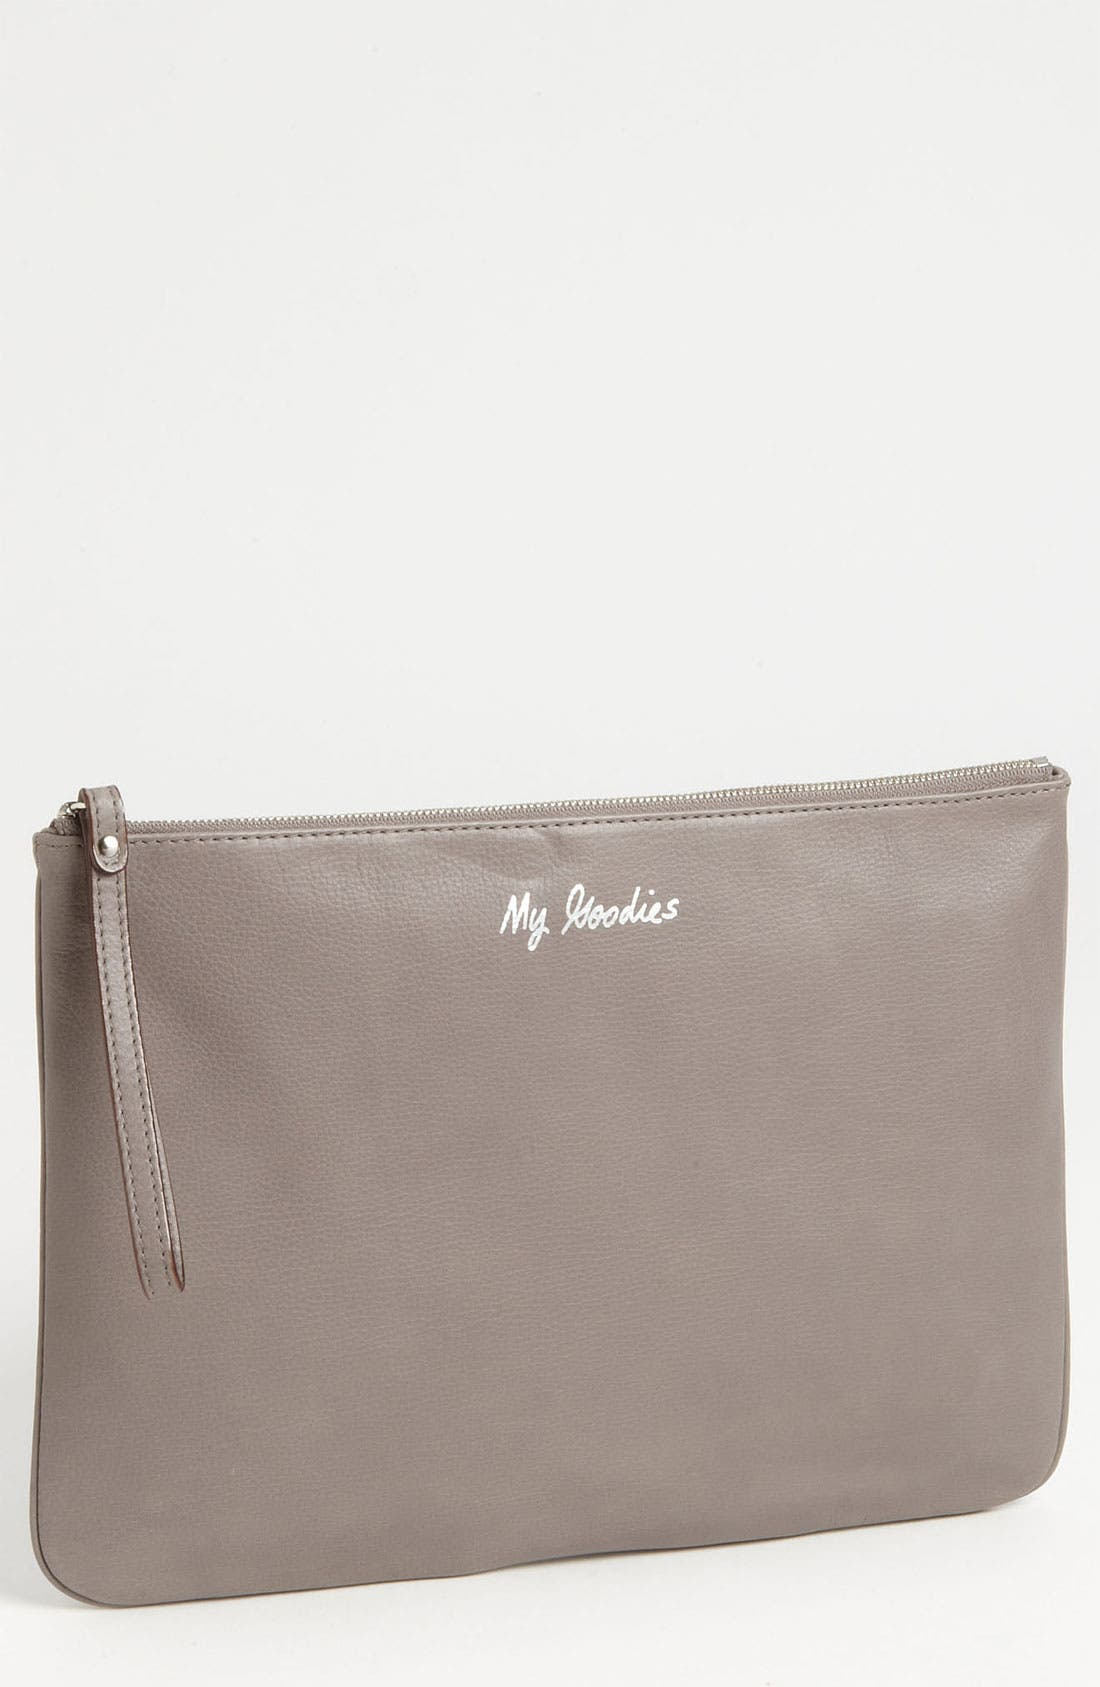 Main Image - Rebecca Minkoff 'My Goodies - Large' Pouch